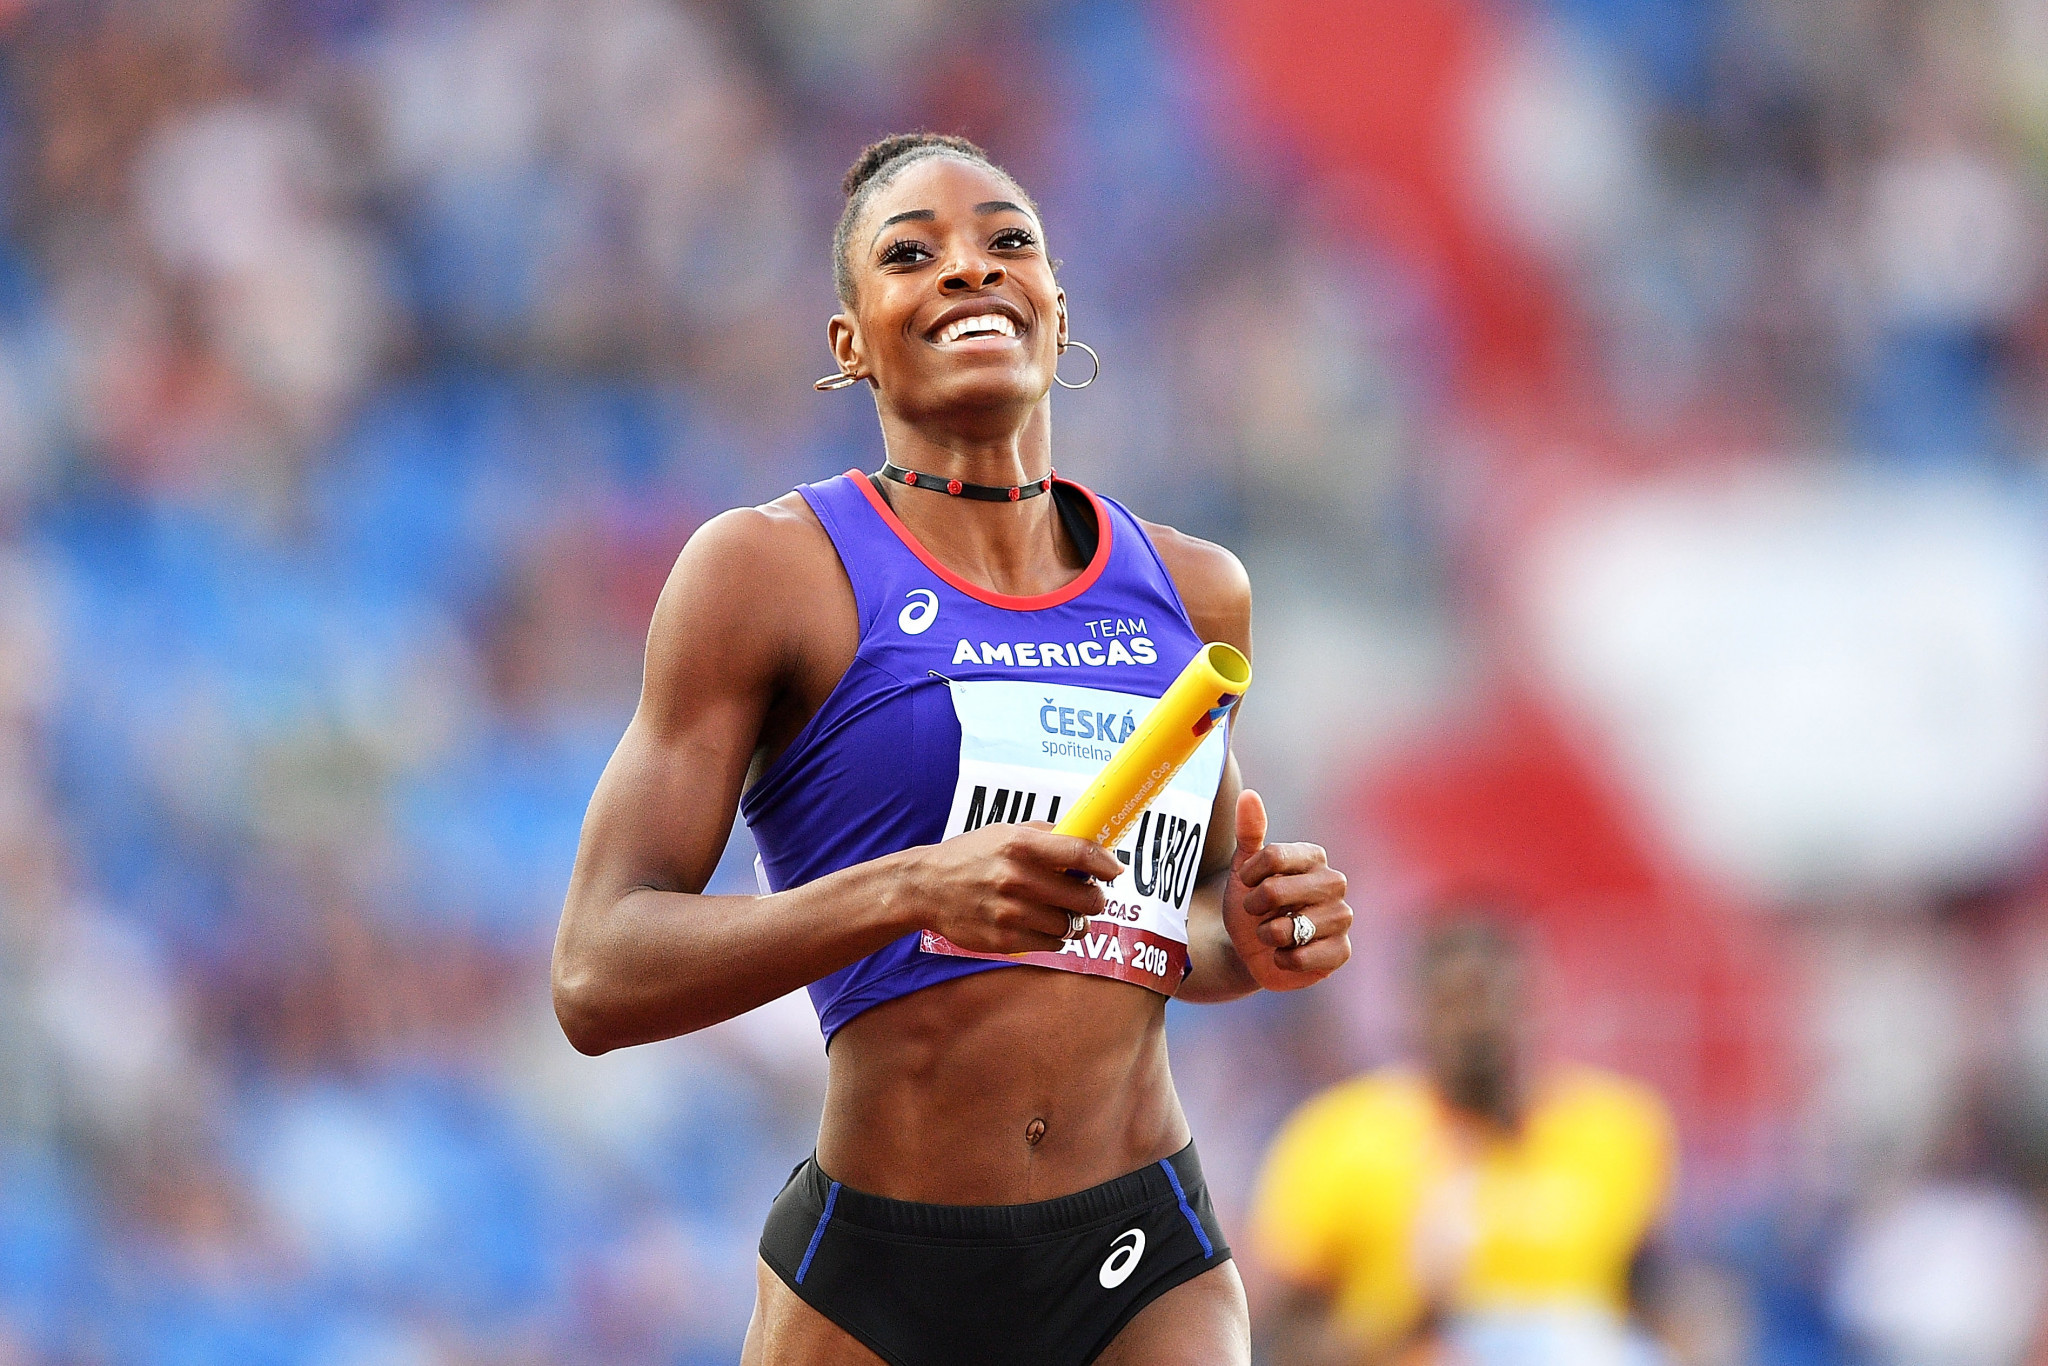 Professional athletes such as Shaunae Miller-Uibo are ineligible for the funding ©Getty Images